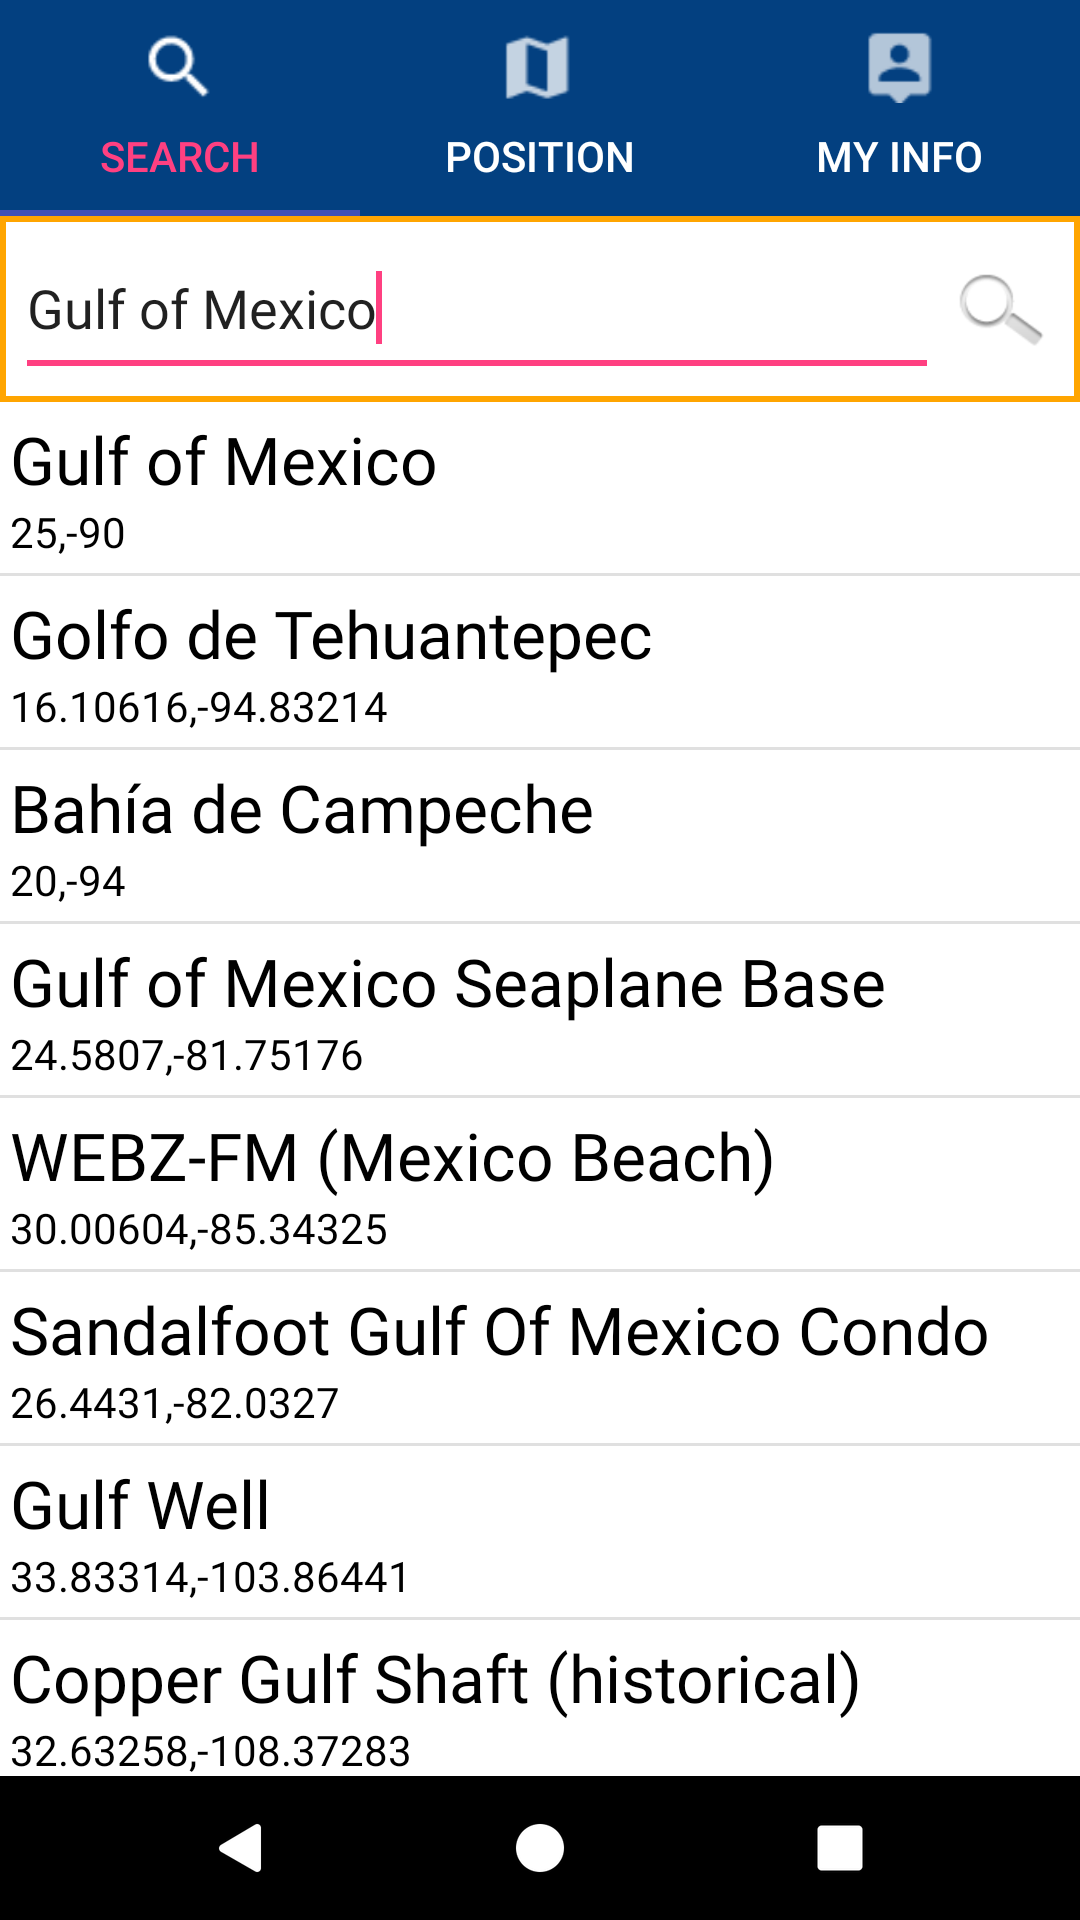 Gulf of Mexico nautical charts: Amazon.es: Appstore para Android